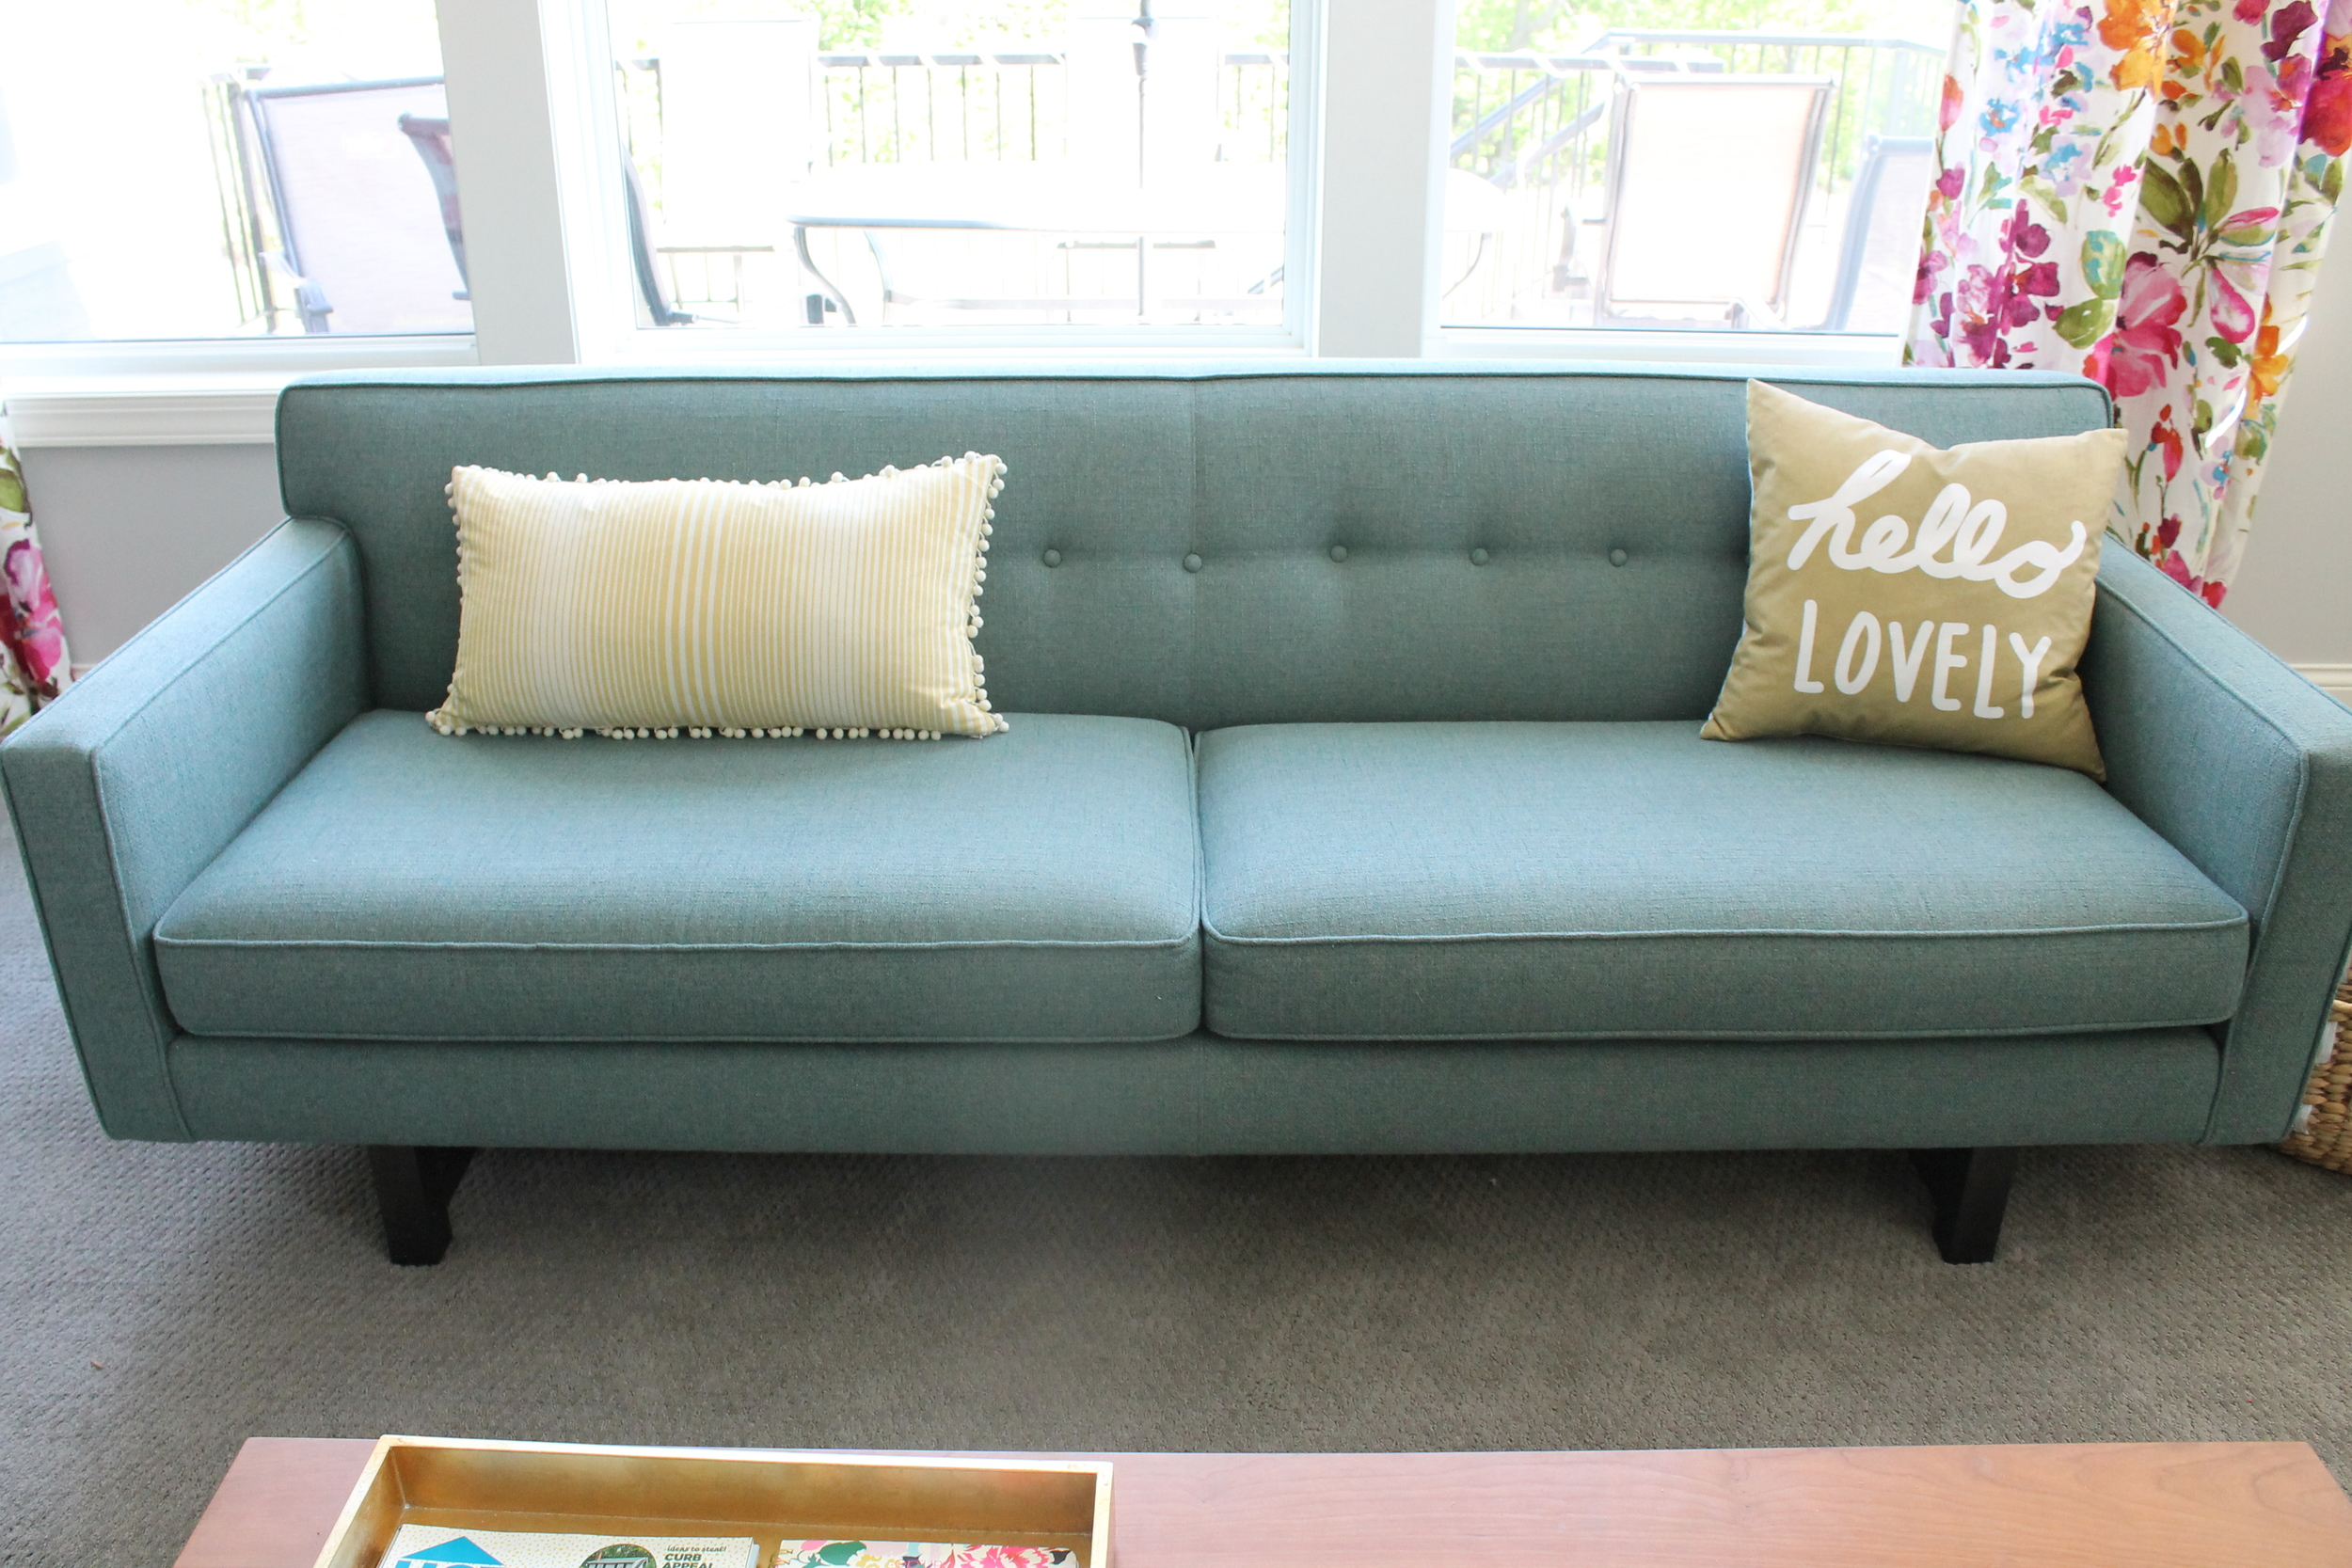 Mid Century Modern Sofa. The Andre from Room and Board.